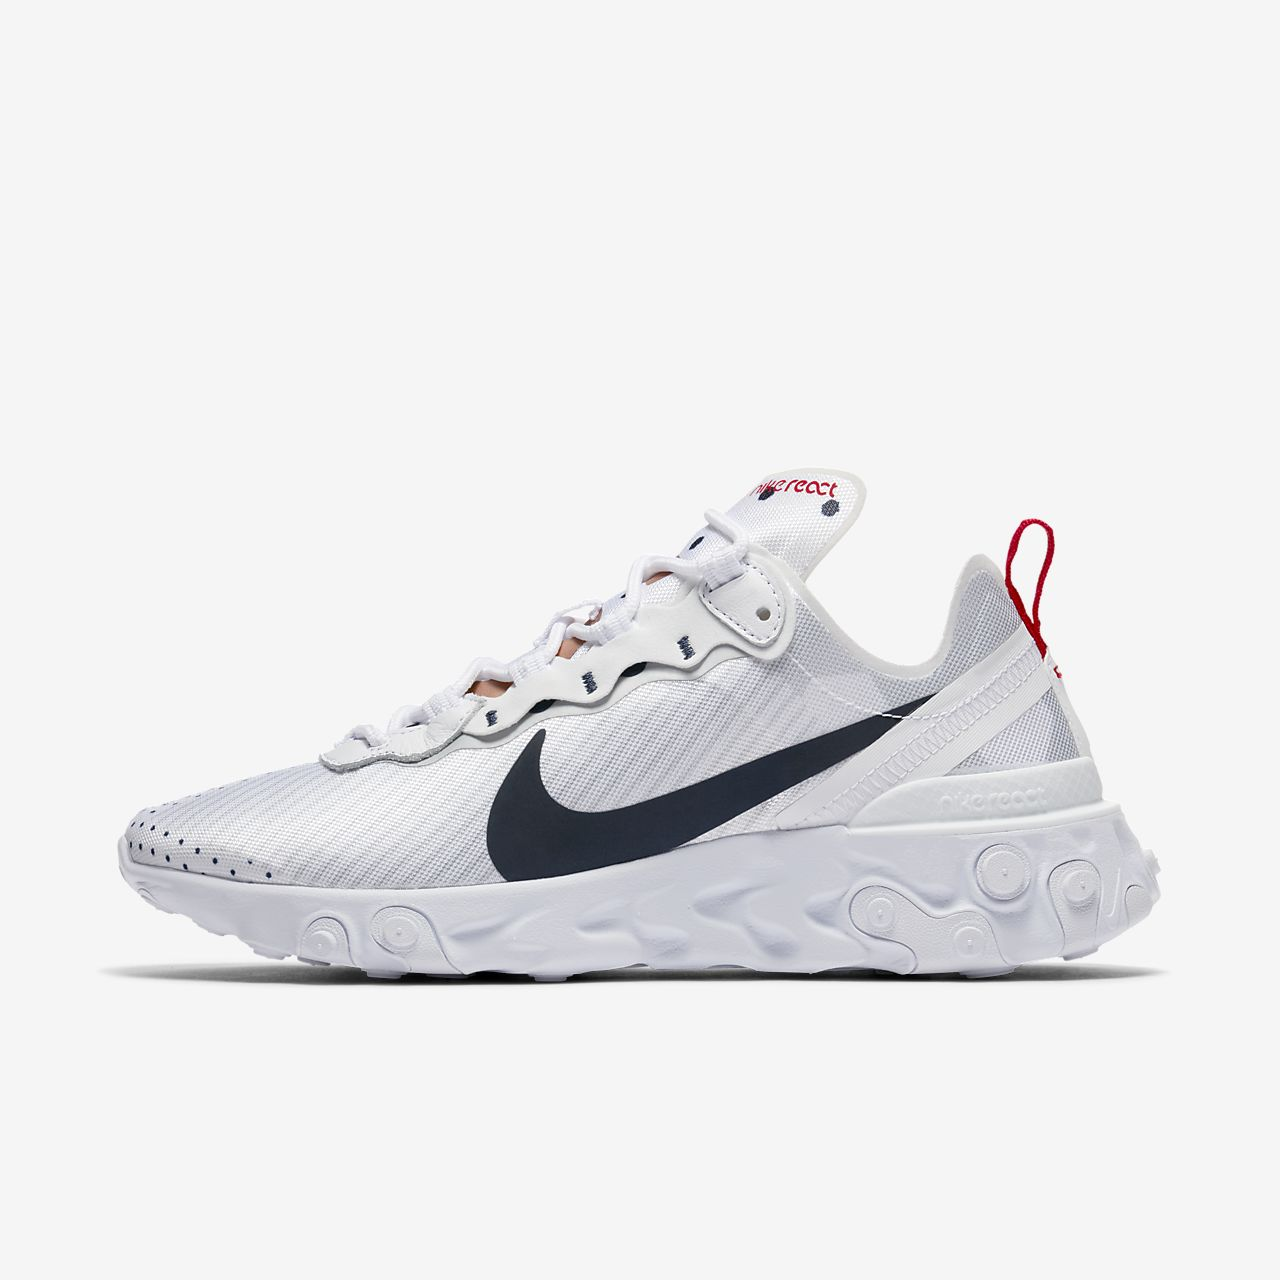 Nike React Element 55 Premium Unité Totale Women's Shoe